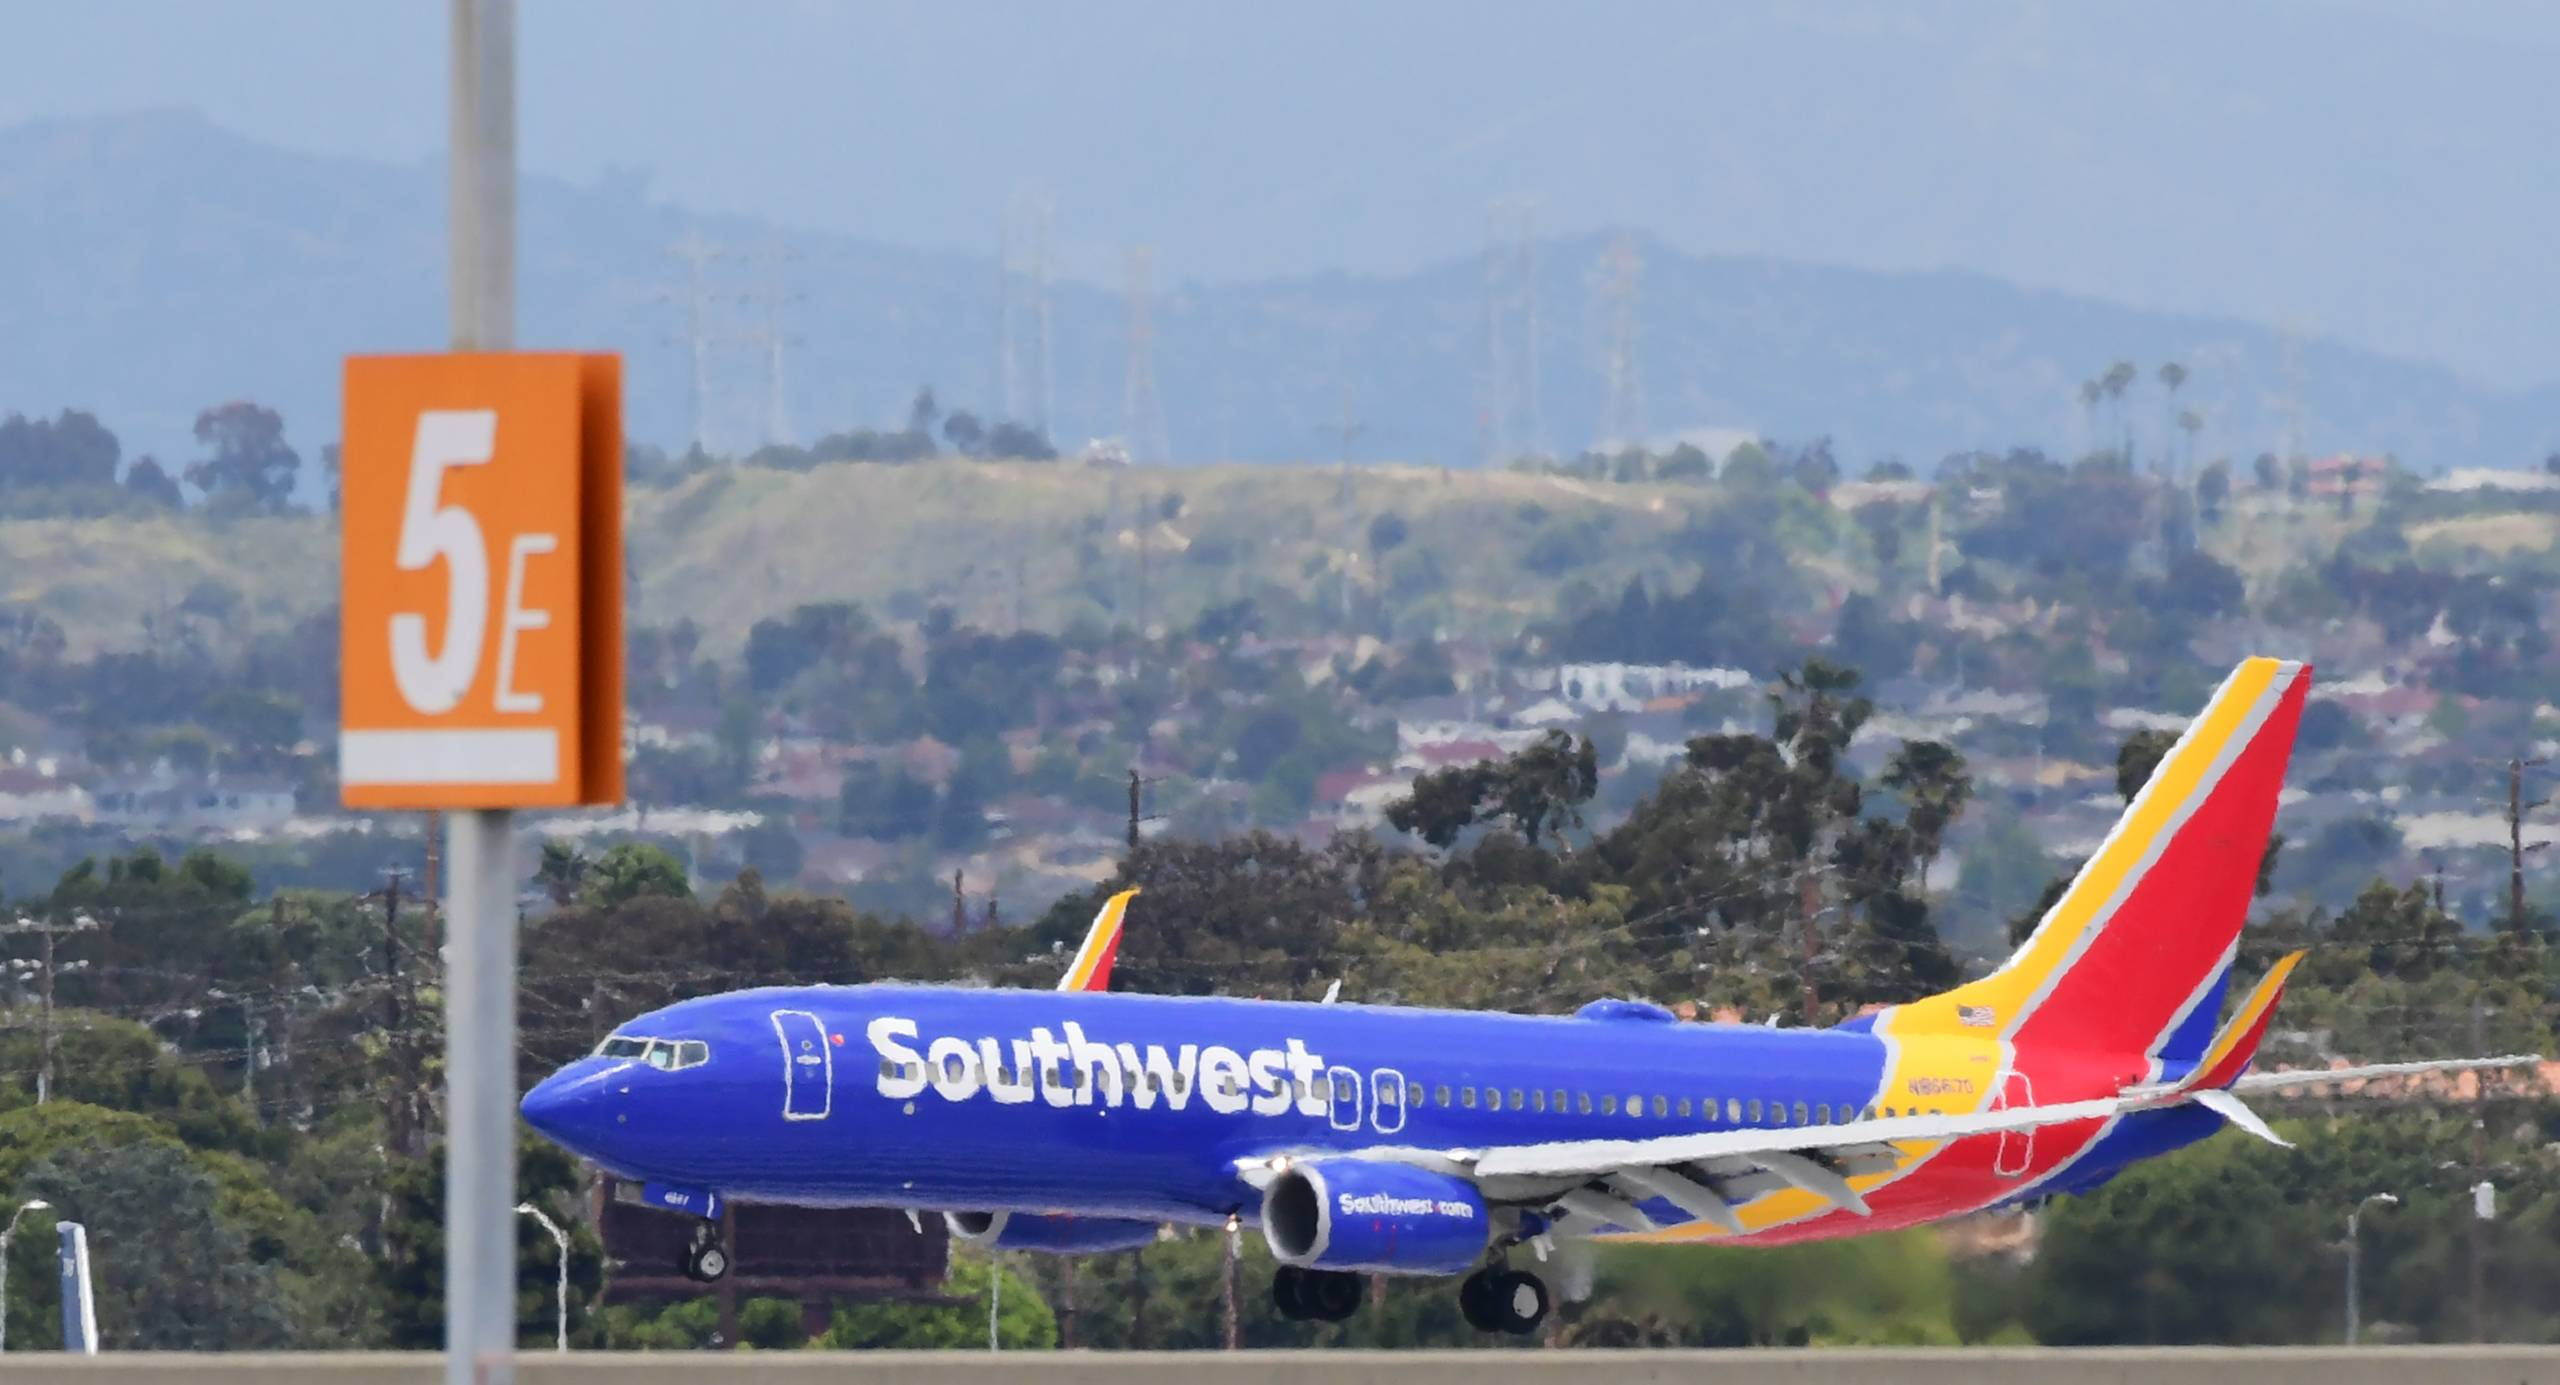 Southwest Airlines wins JetBlue's abandoned slots in Long Beach